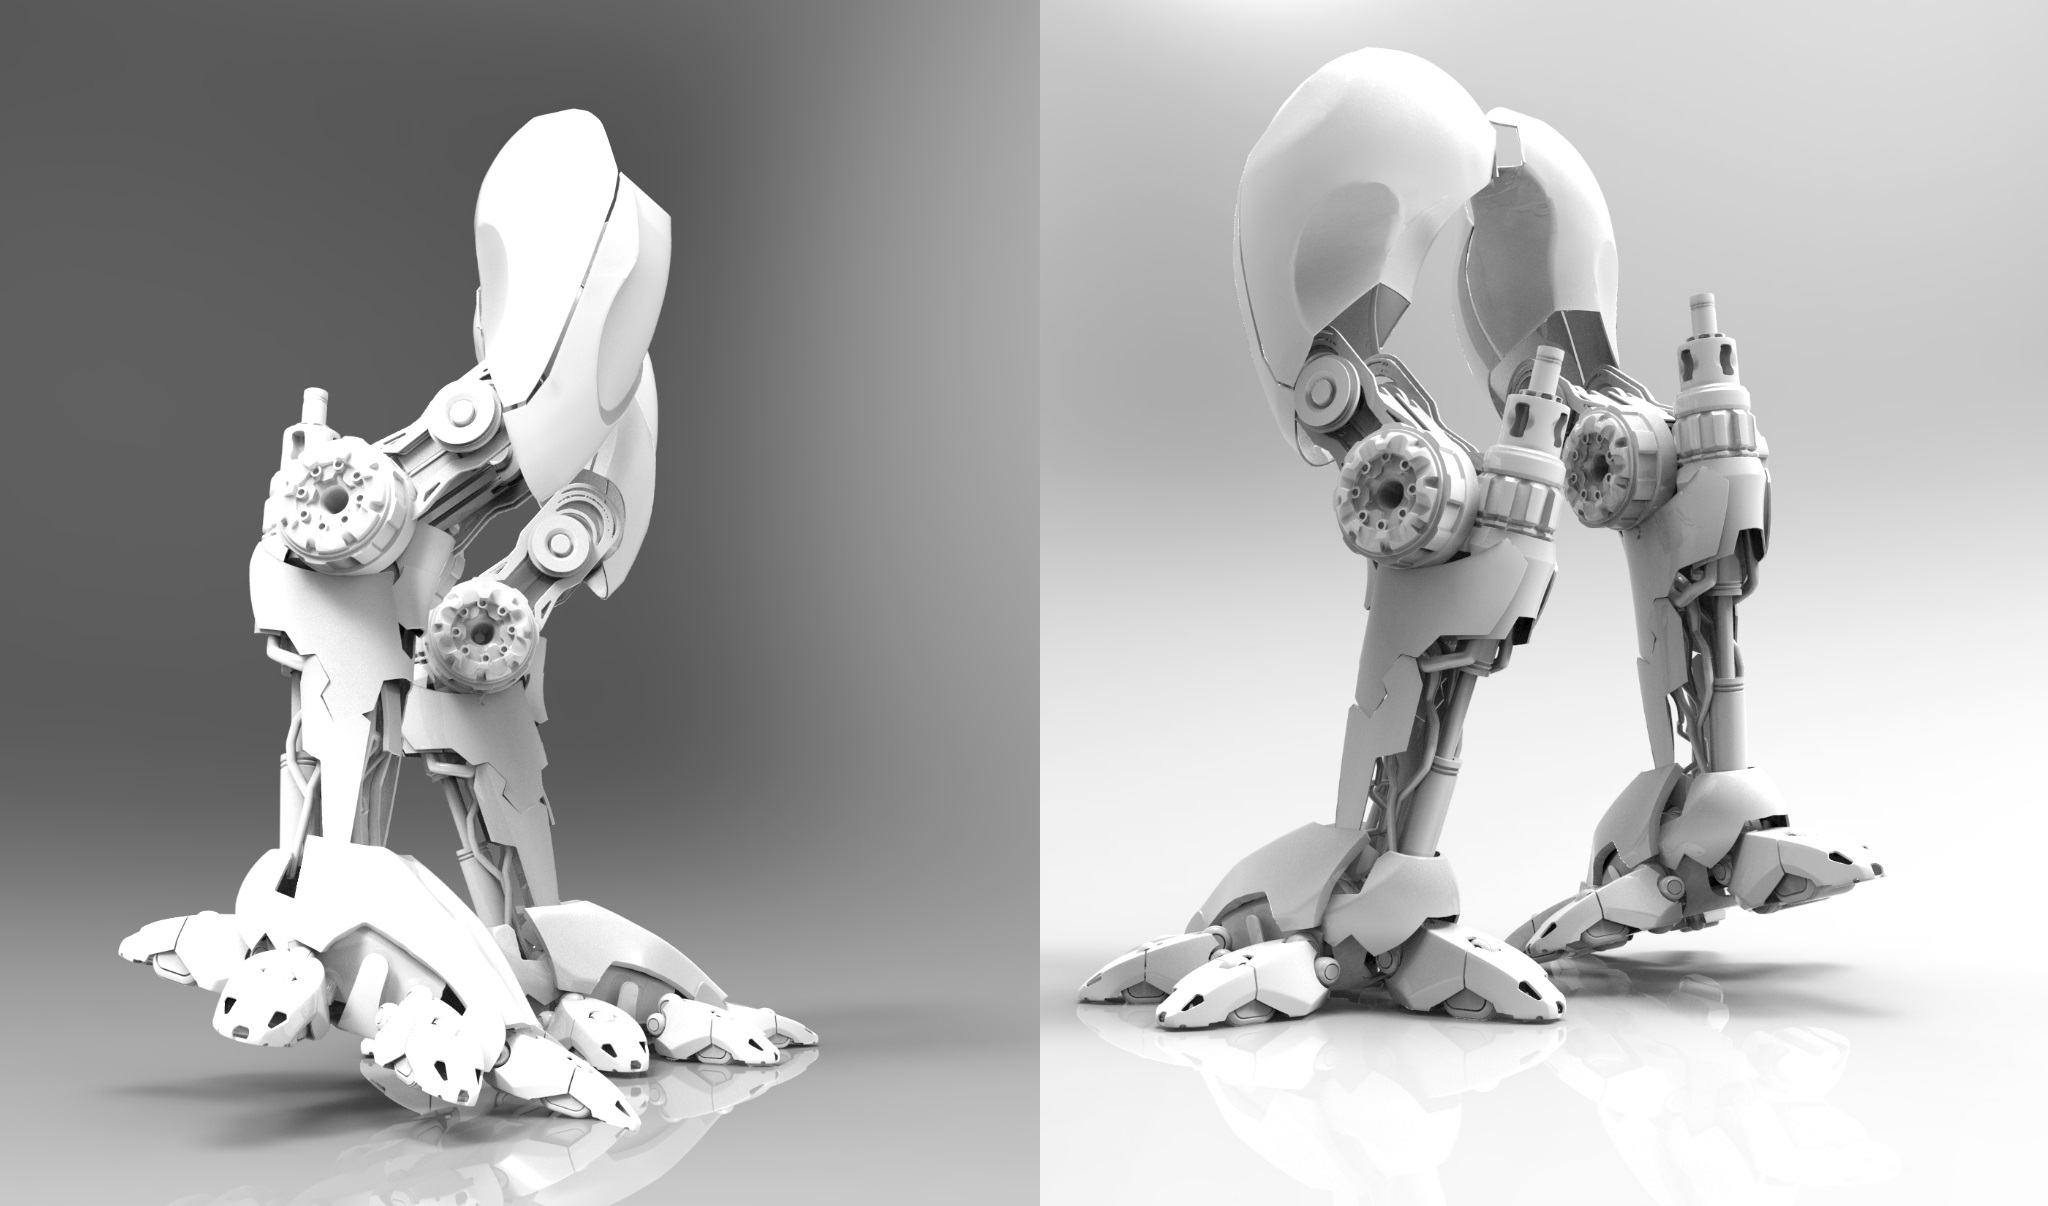 legs_of_mech_tutorial___back_and_side_view__by_chofni1996-d72n06j.jpg